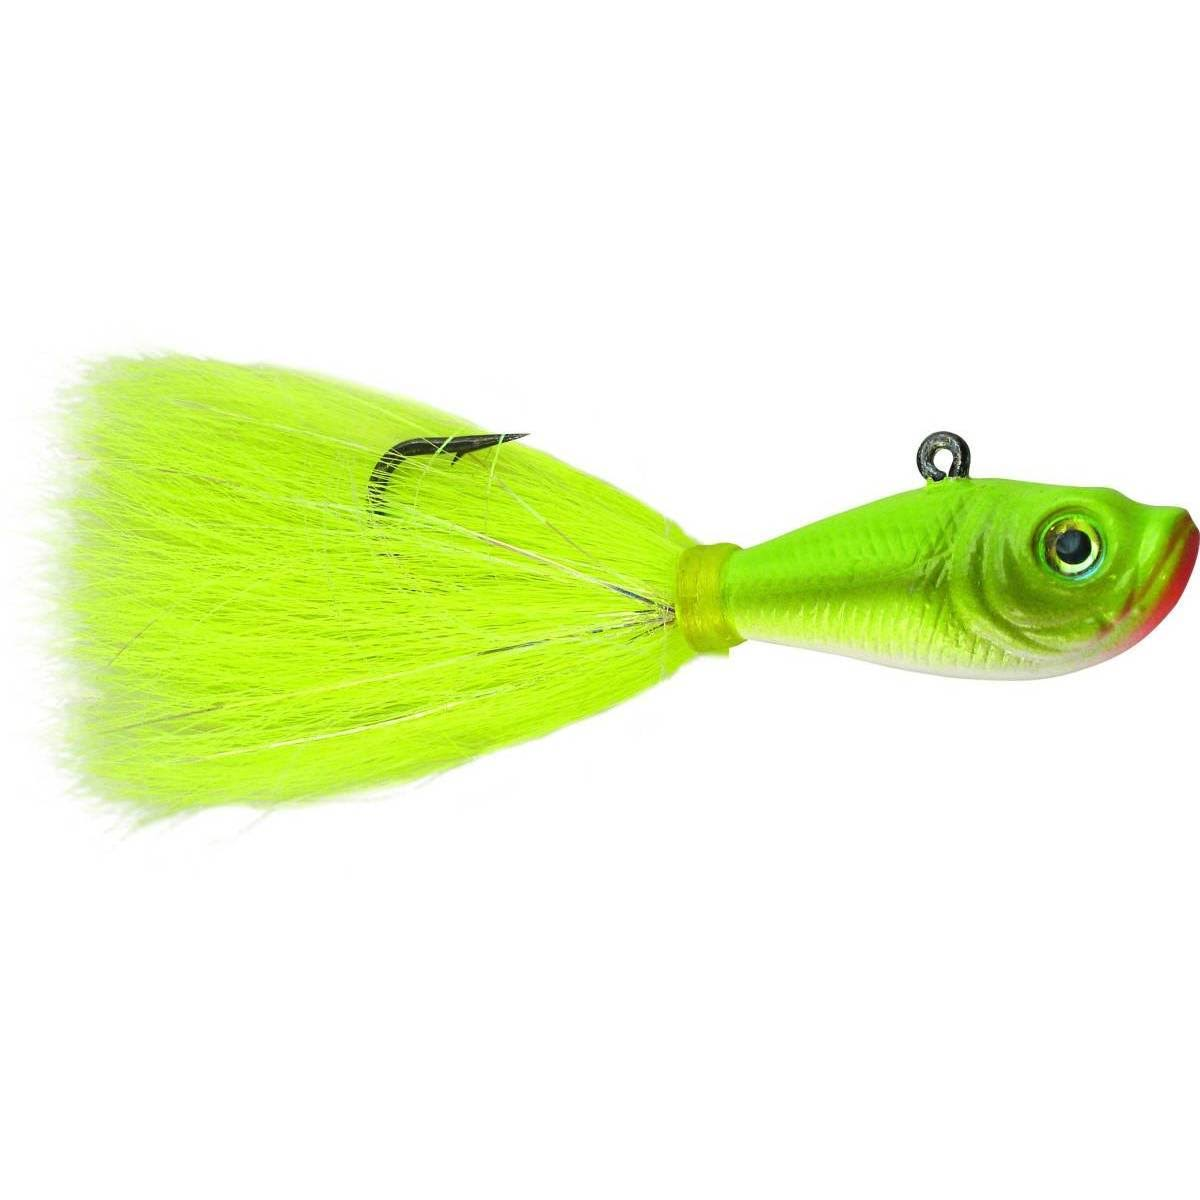 SPRO Squid Tail Jigs